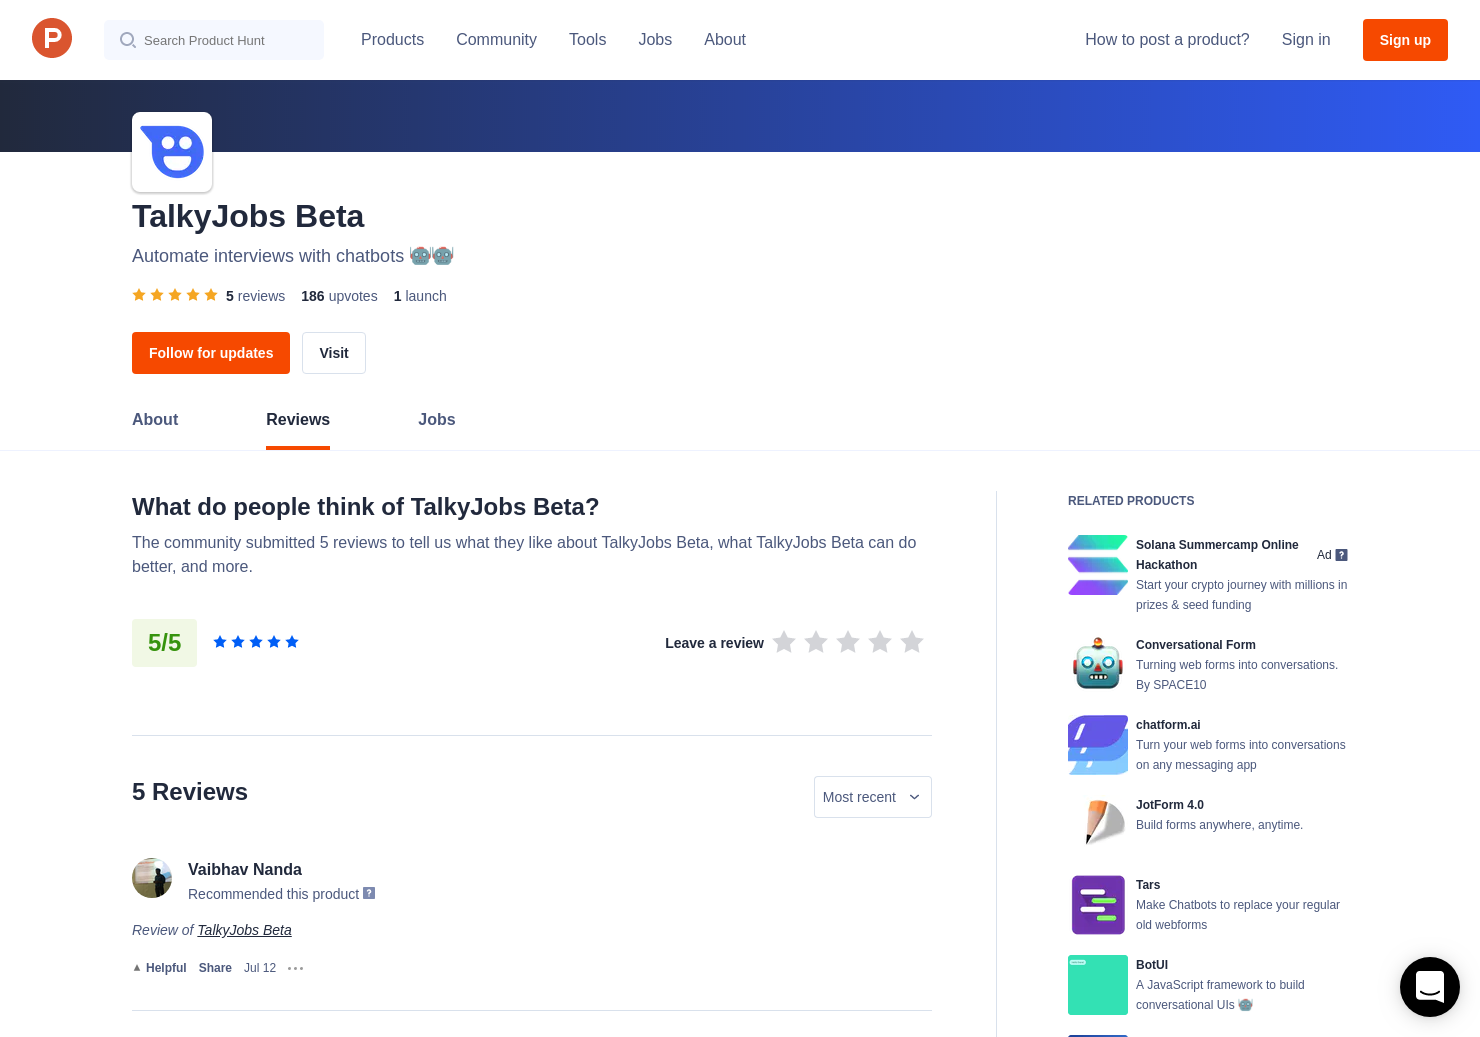 Curtis Smith's review of TalkyJobs Beta | Product Hunt